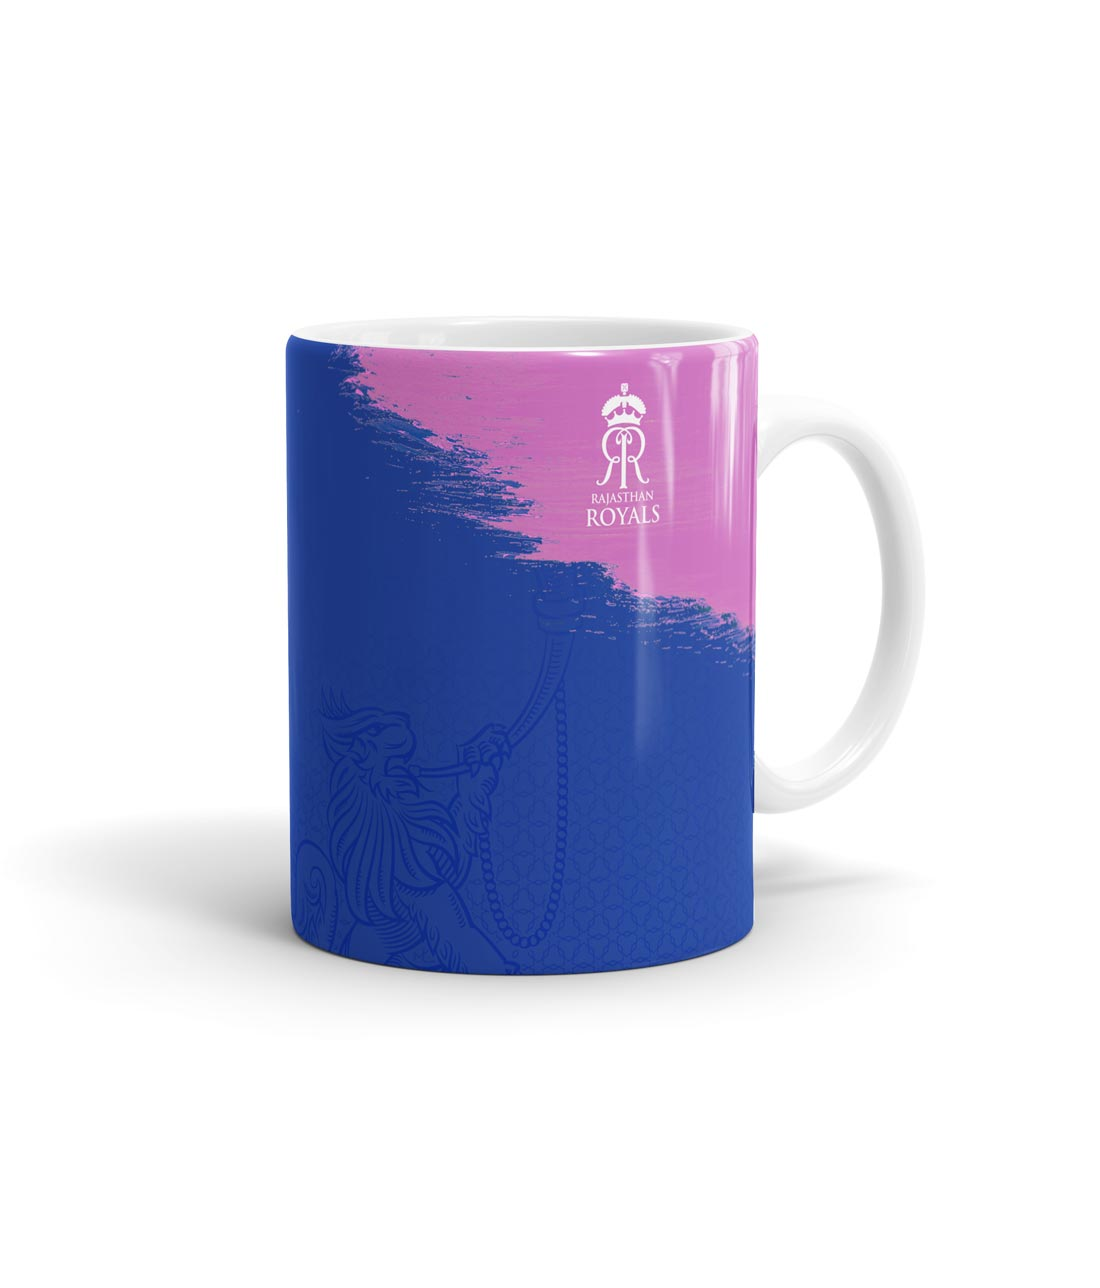 Rajasthan Royals Crest Blue - Coffee Mugs